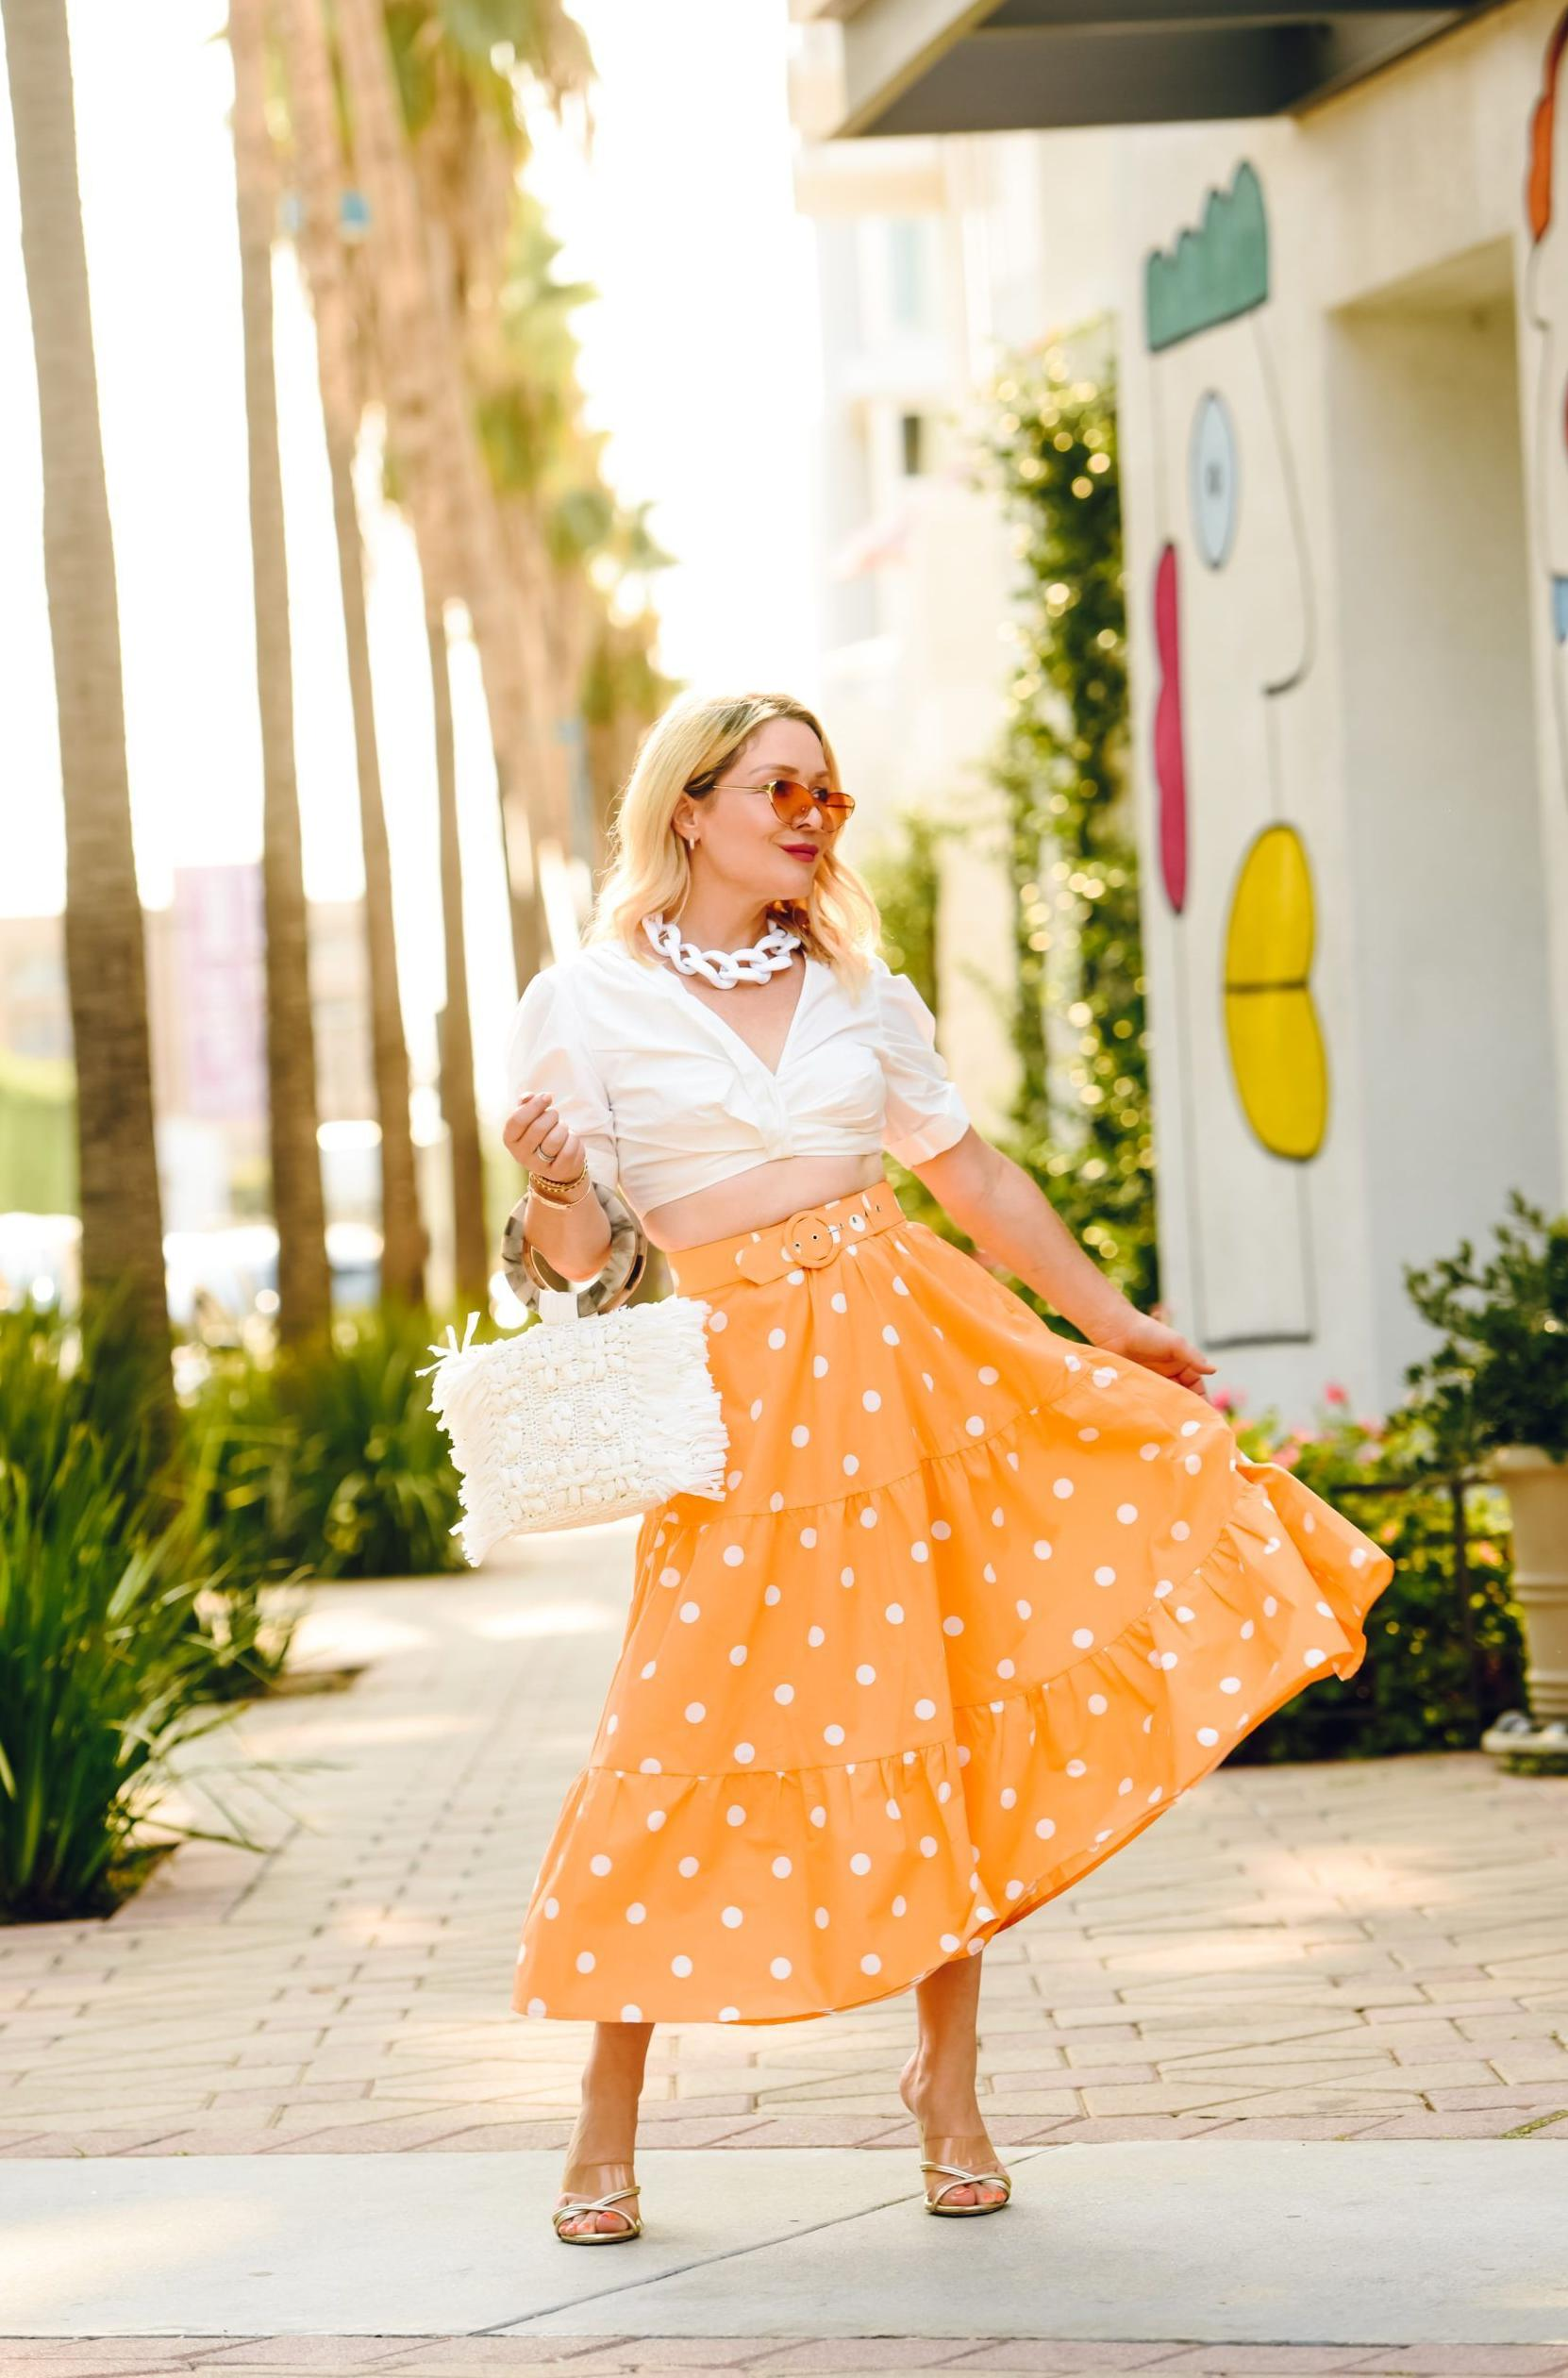 Beautiful Midi Skirts Outfit Ideas To Wear Right Now 2022